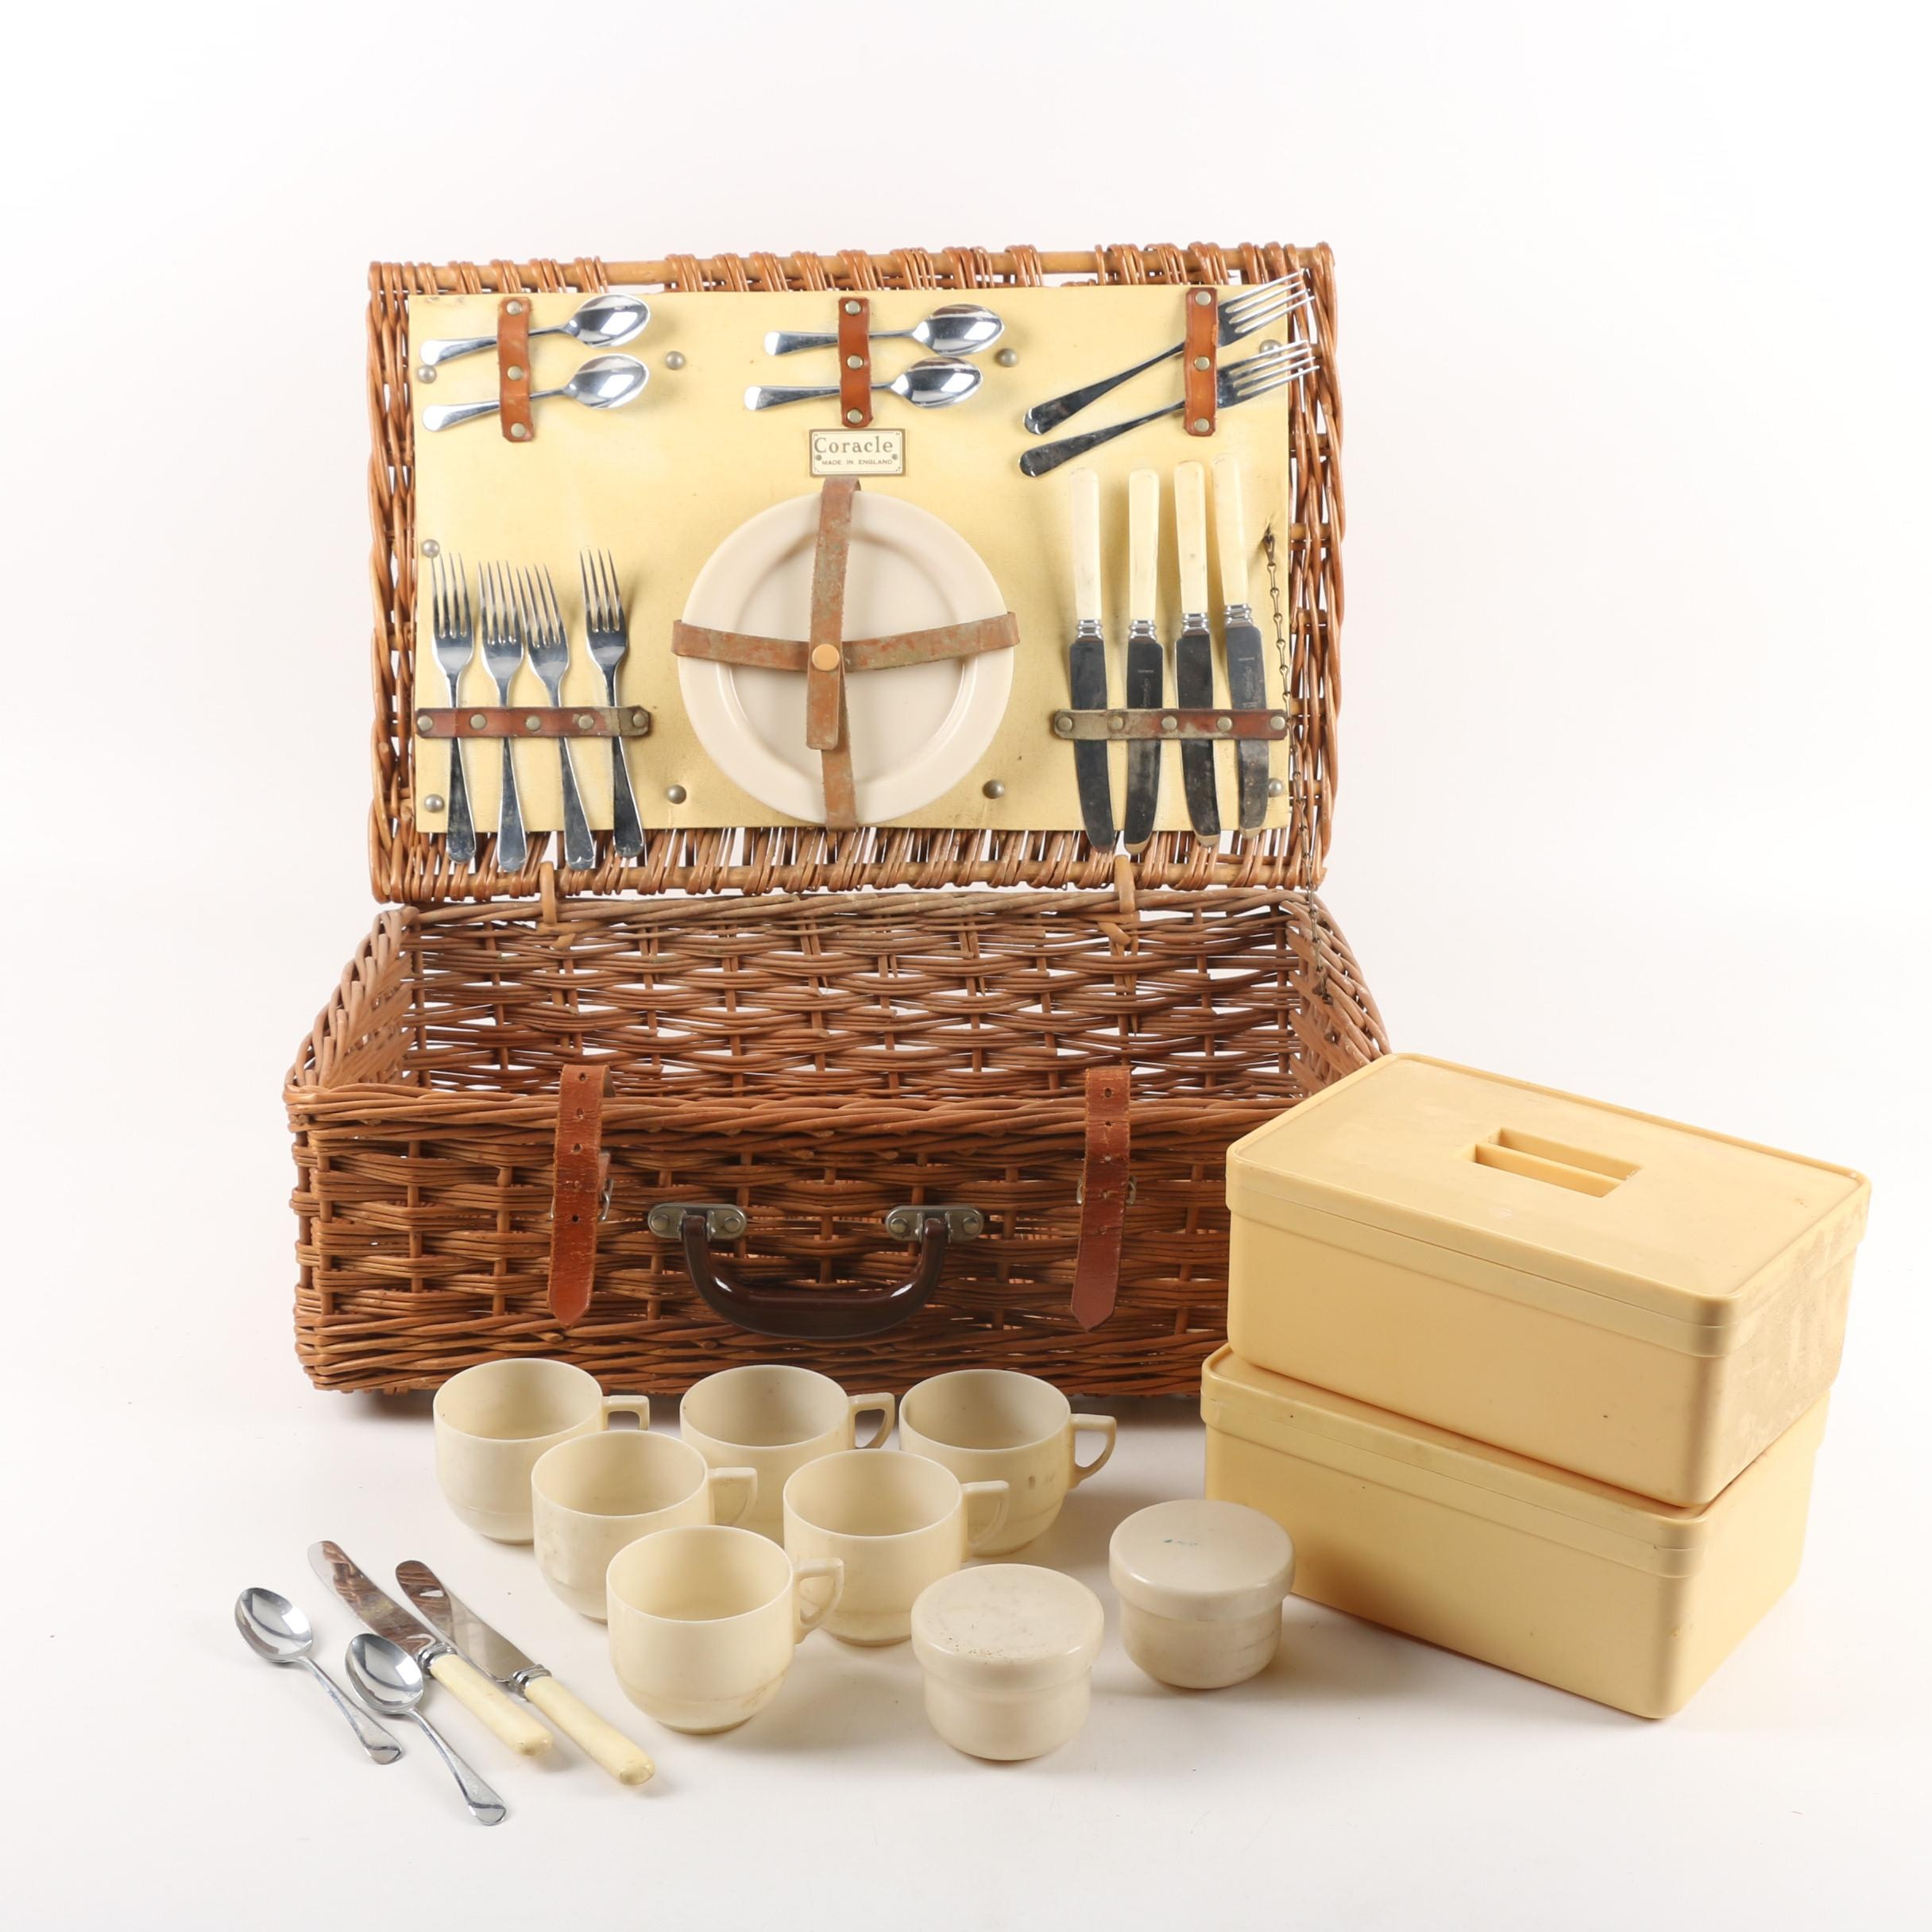 Vintage English Coracle Picnic Basket With Dinnerware